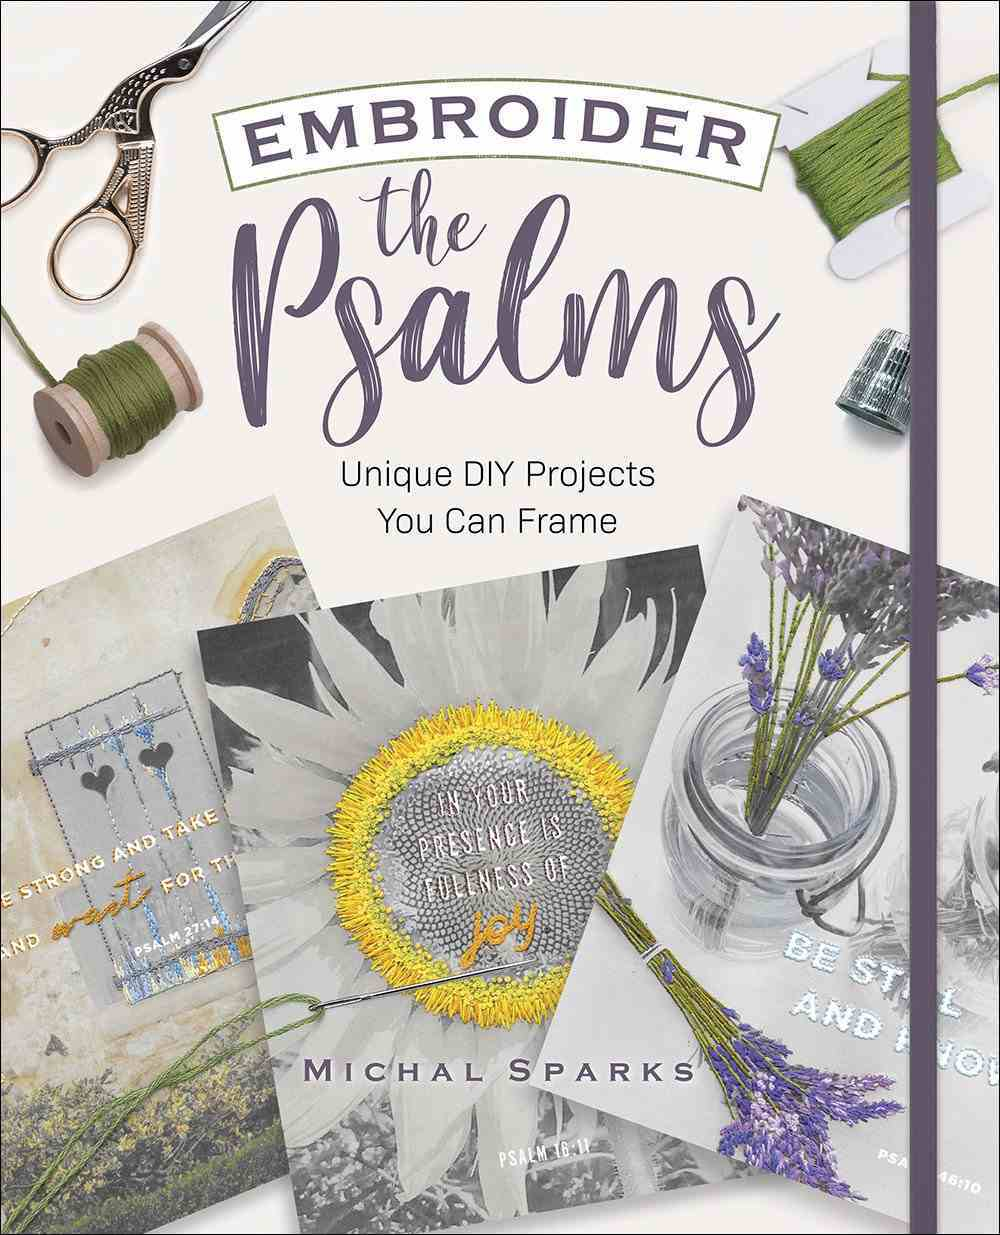 Embroider the Psalms: Unique Diy Projects You Can Frame Paperback